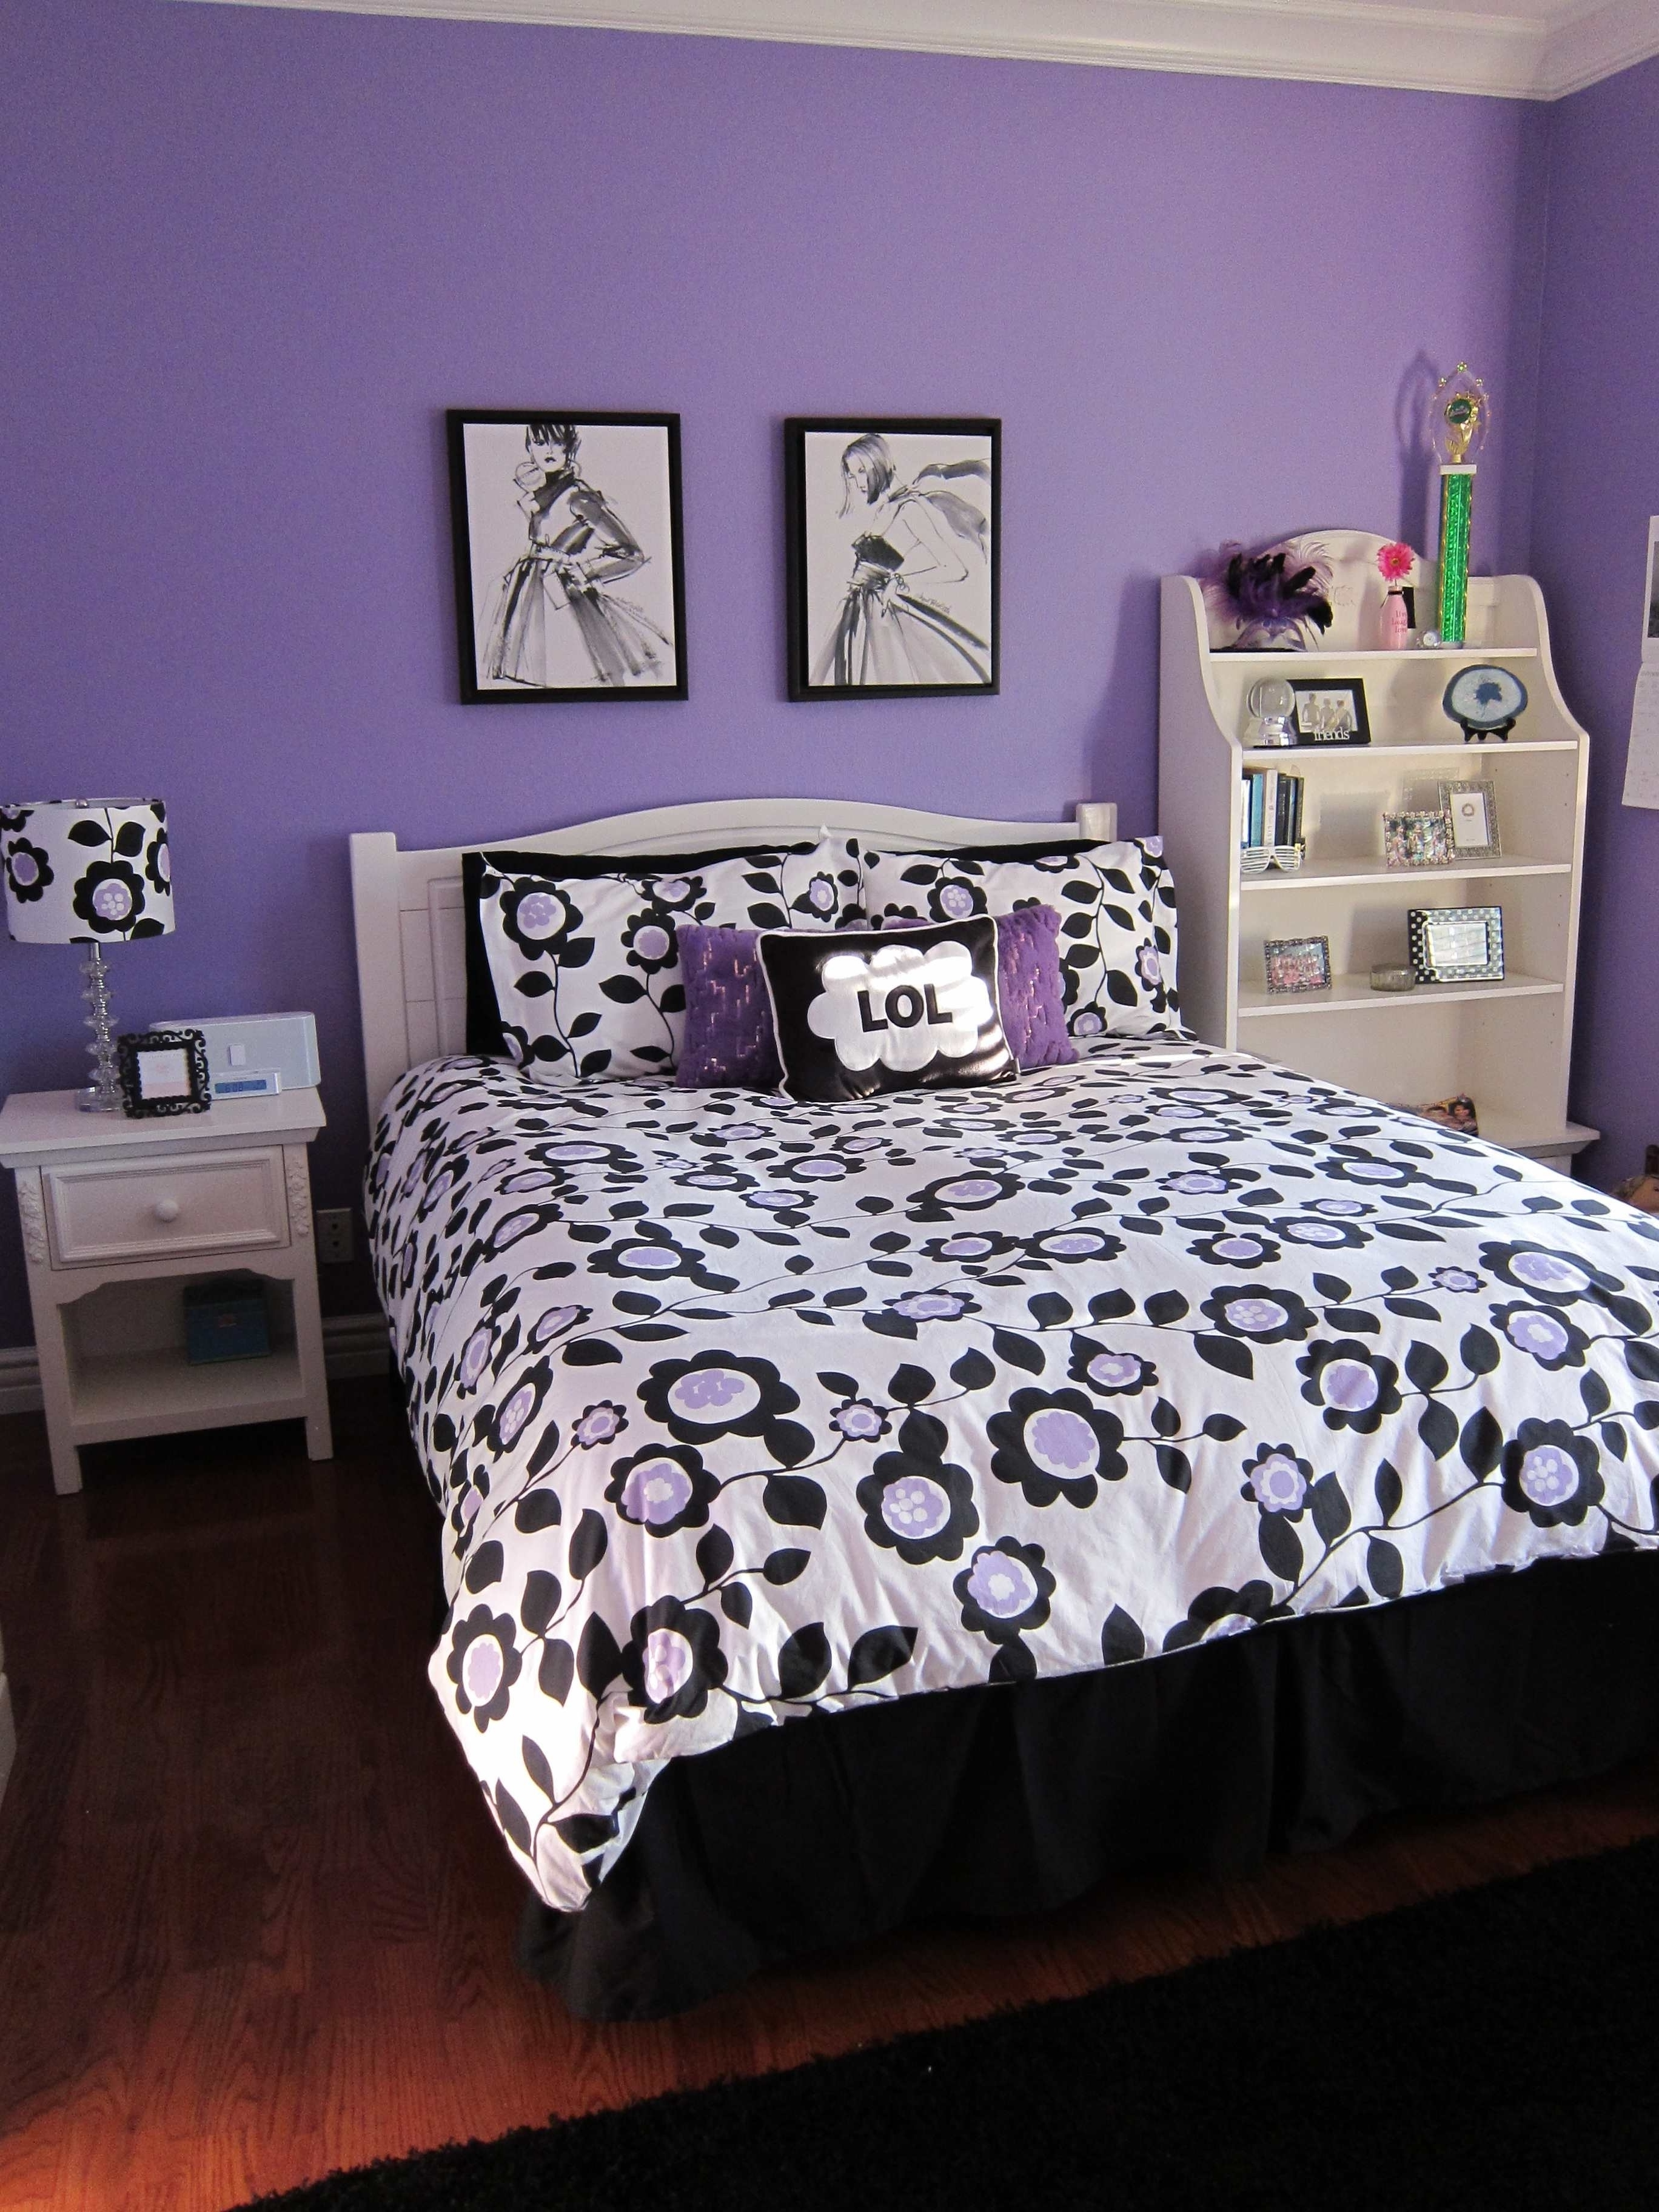 Latest Teenage Wall Art Pertaining To Teens Room Teen Decorating Ideas For Beautify With Inspirations (View 4 of 15)